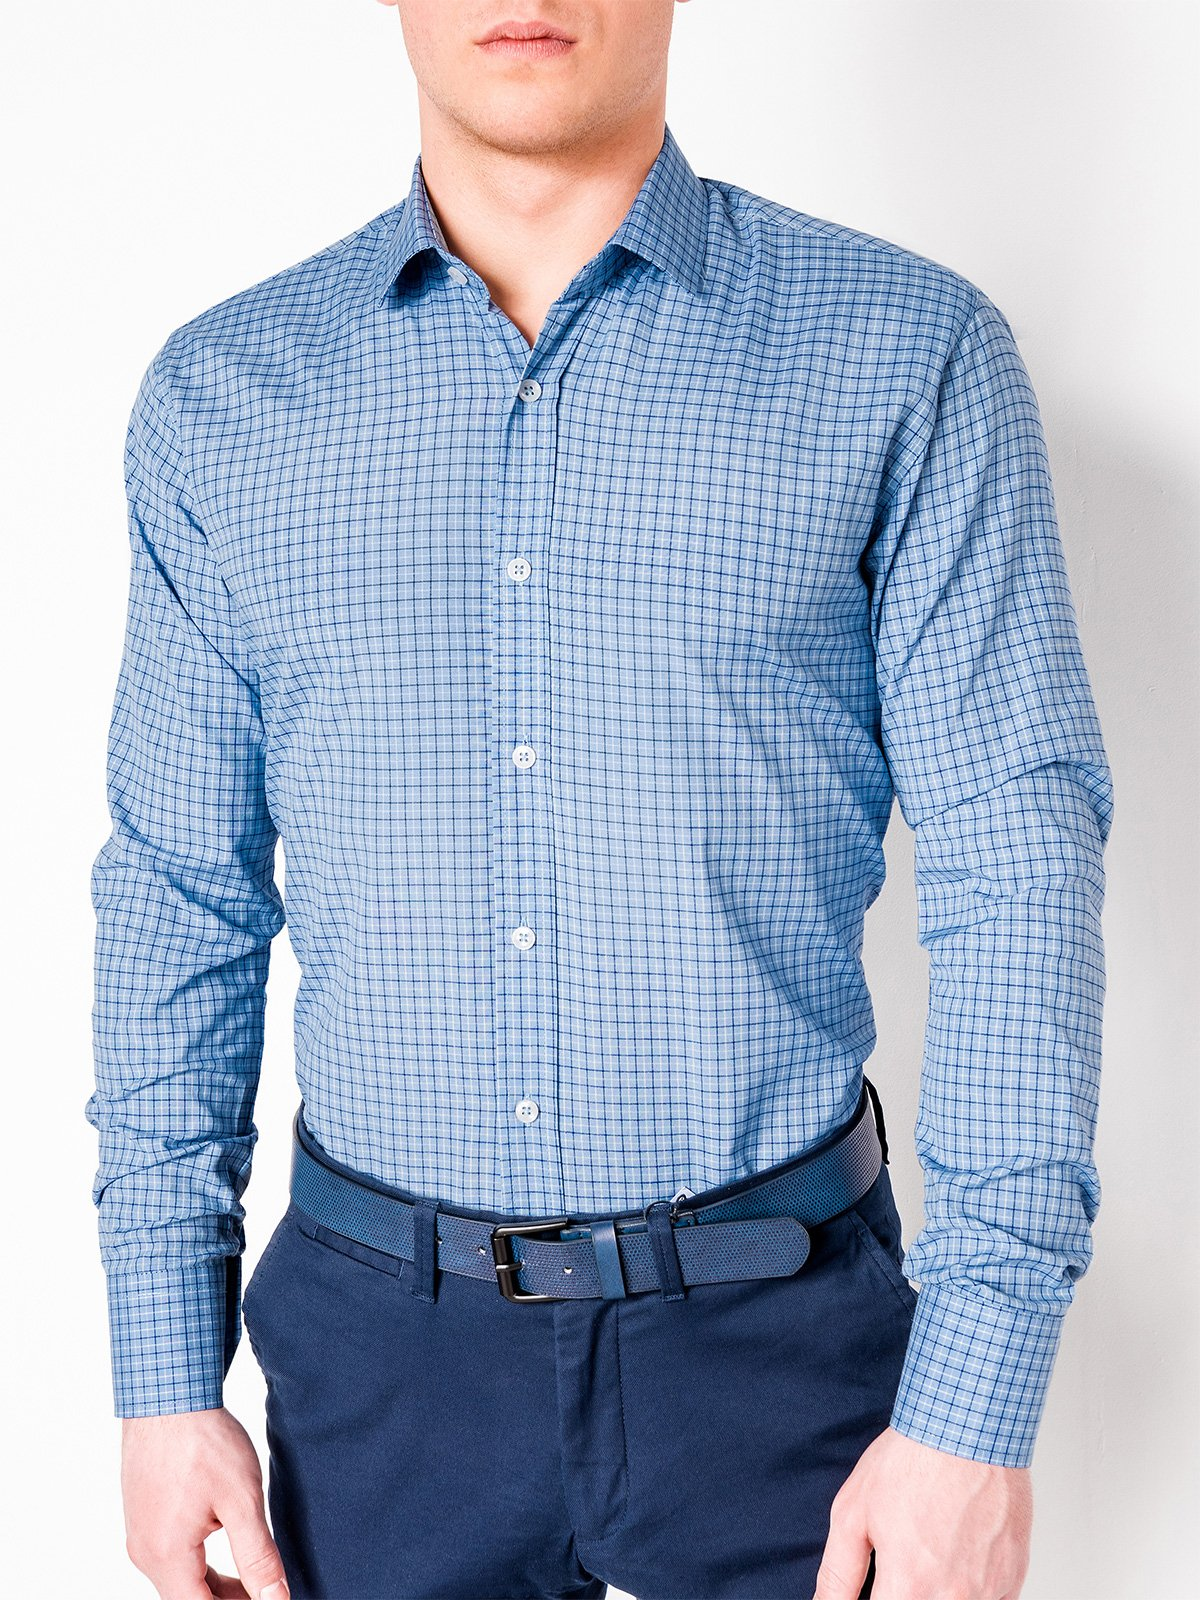 Ombre Clothing Men's check shirt with long sleeves K434